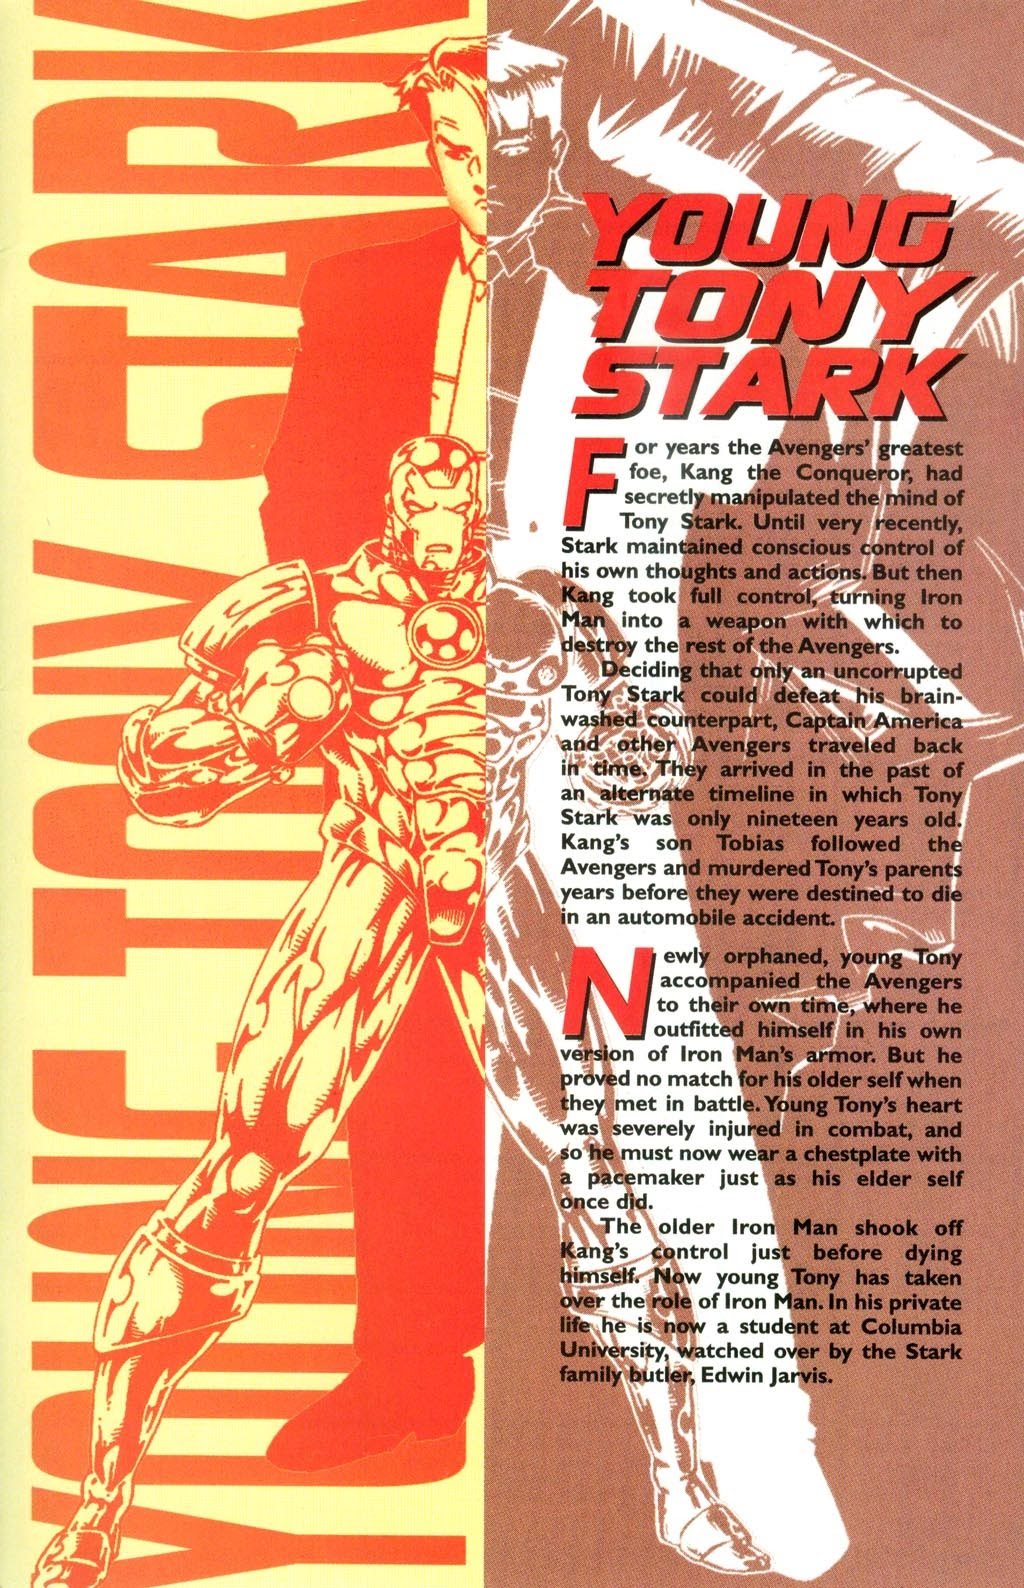 Read online Iron Man: The Legend comic -  Issue # Full - 46